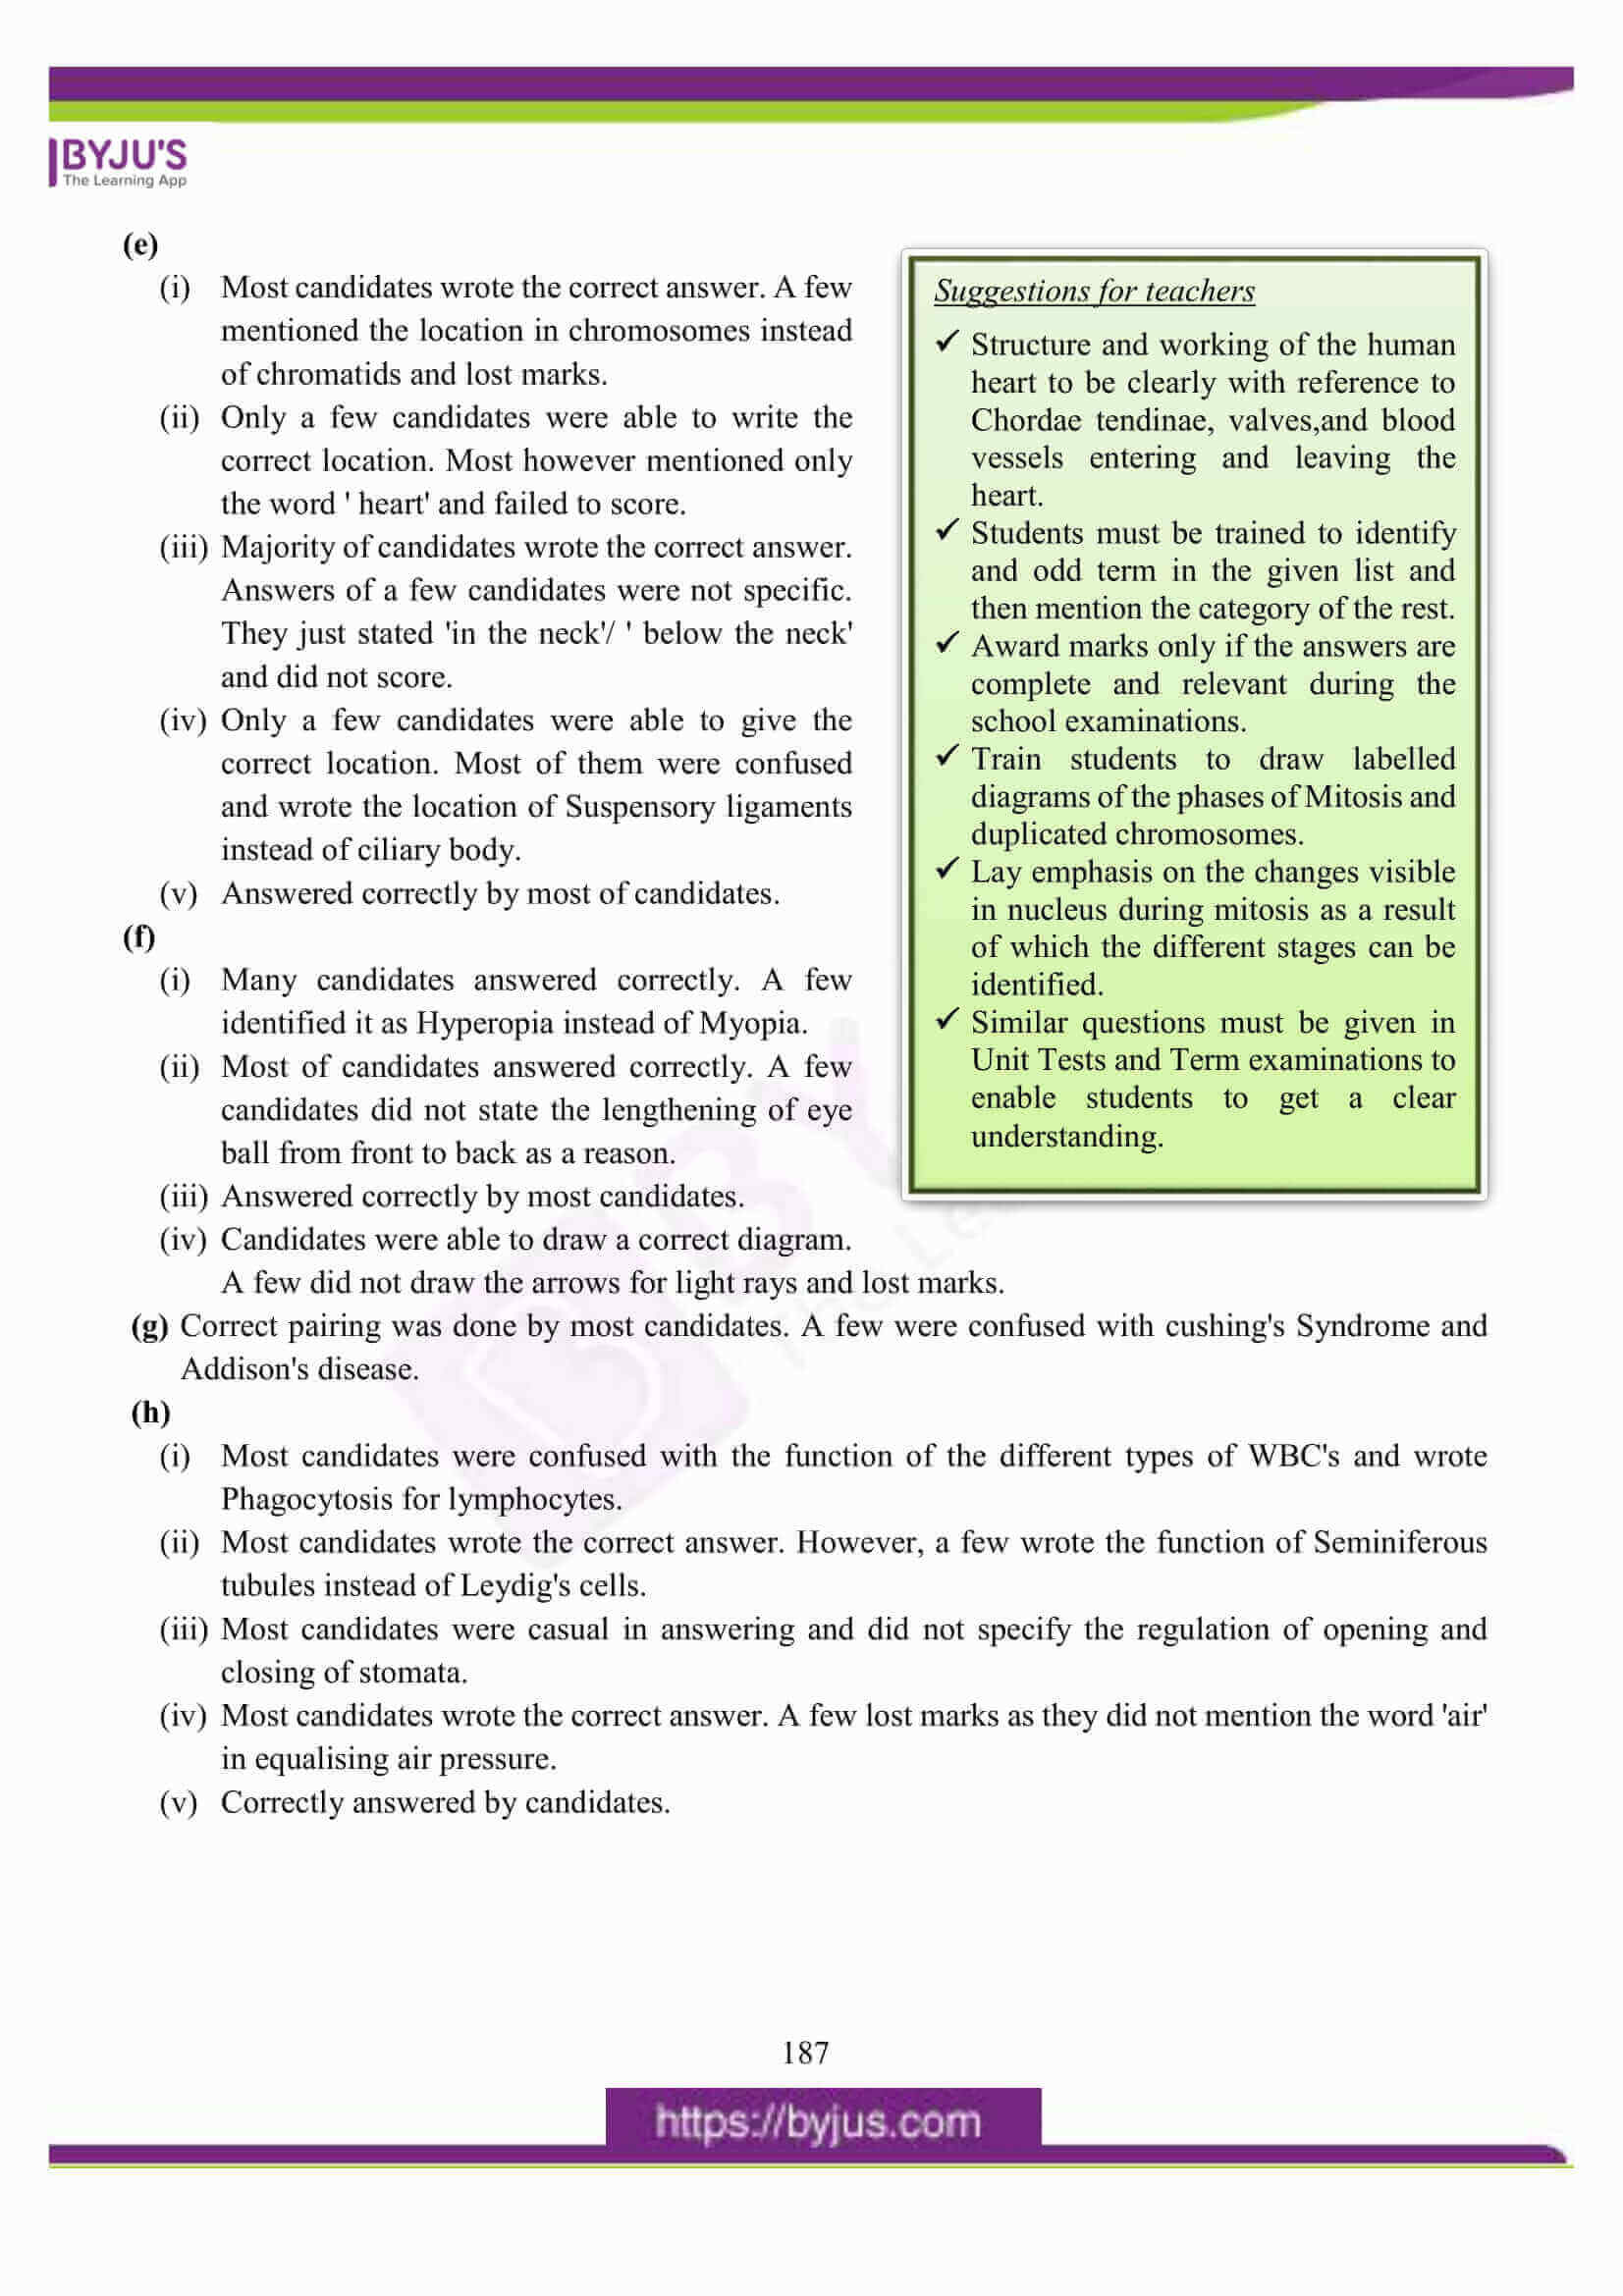 icse class 10 biology question paper solution 2016 05